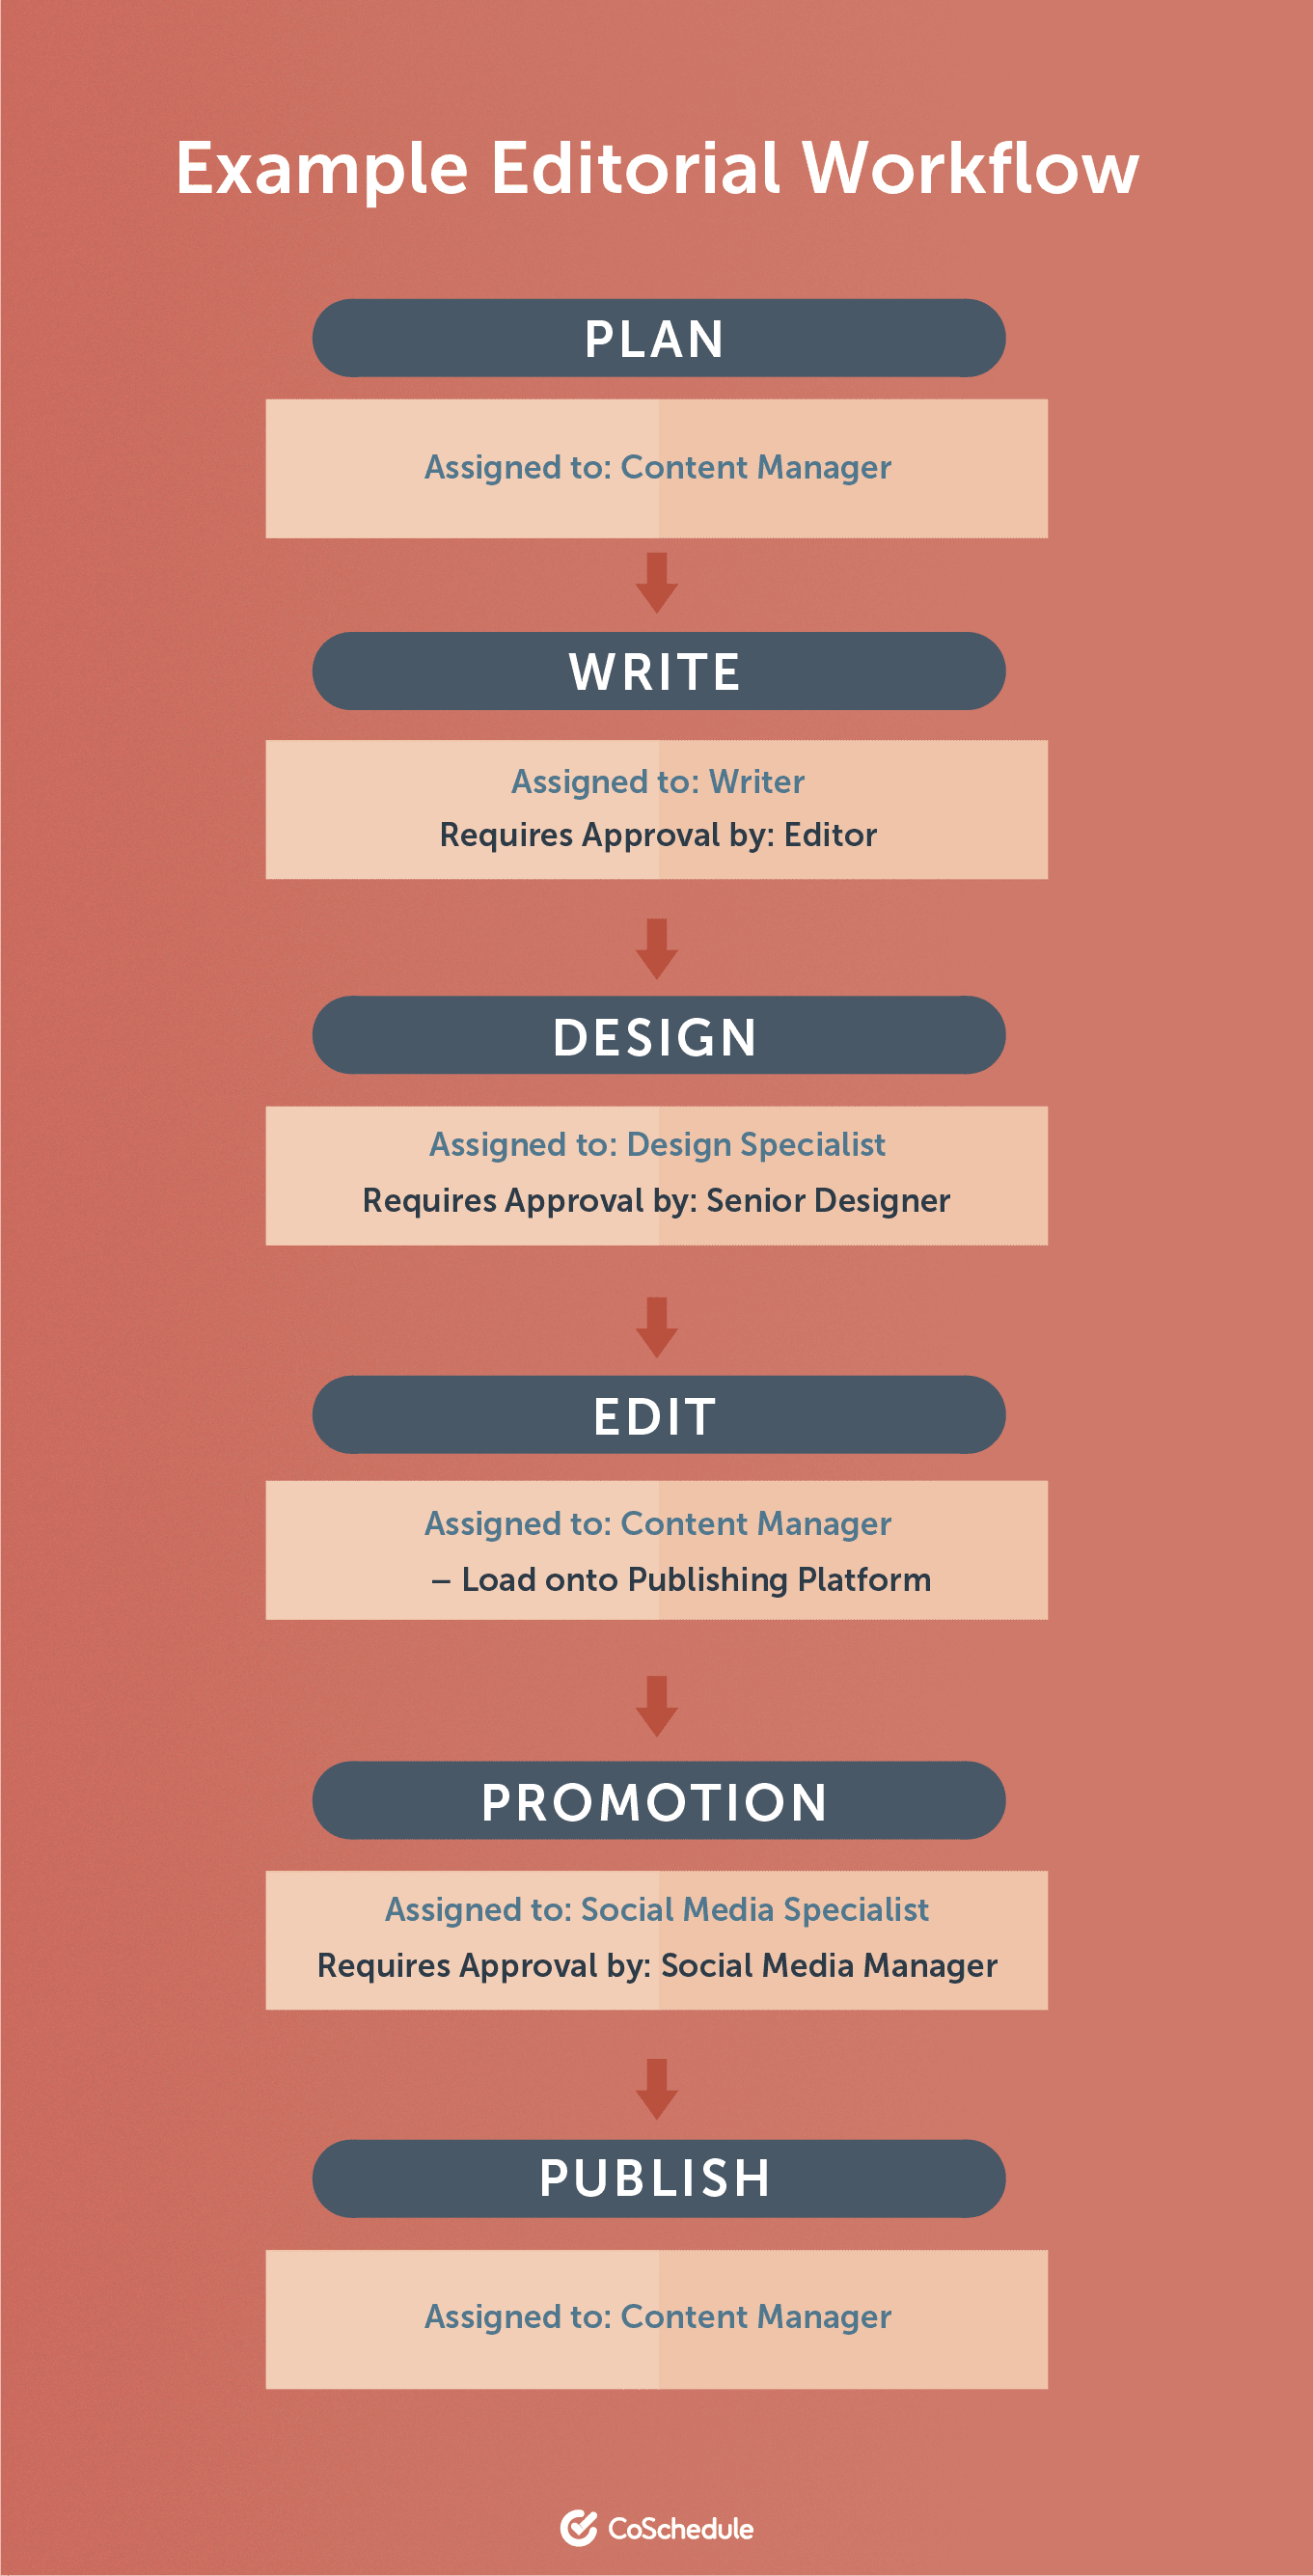 An example of what an editorial workflow should look like